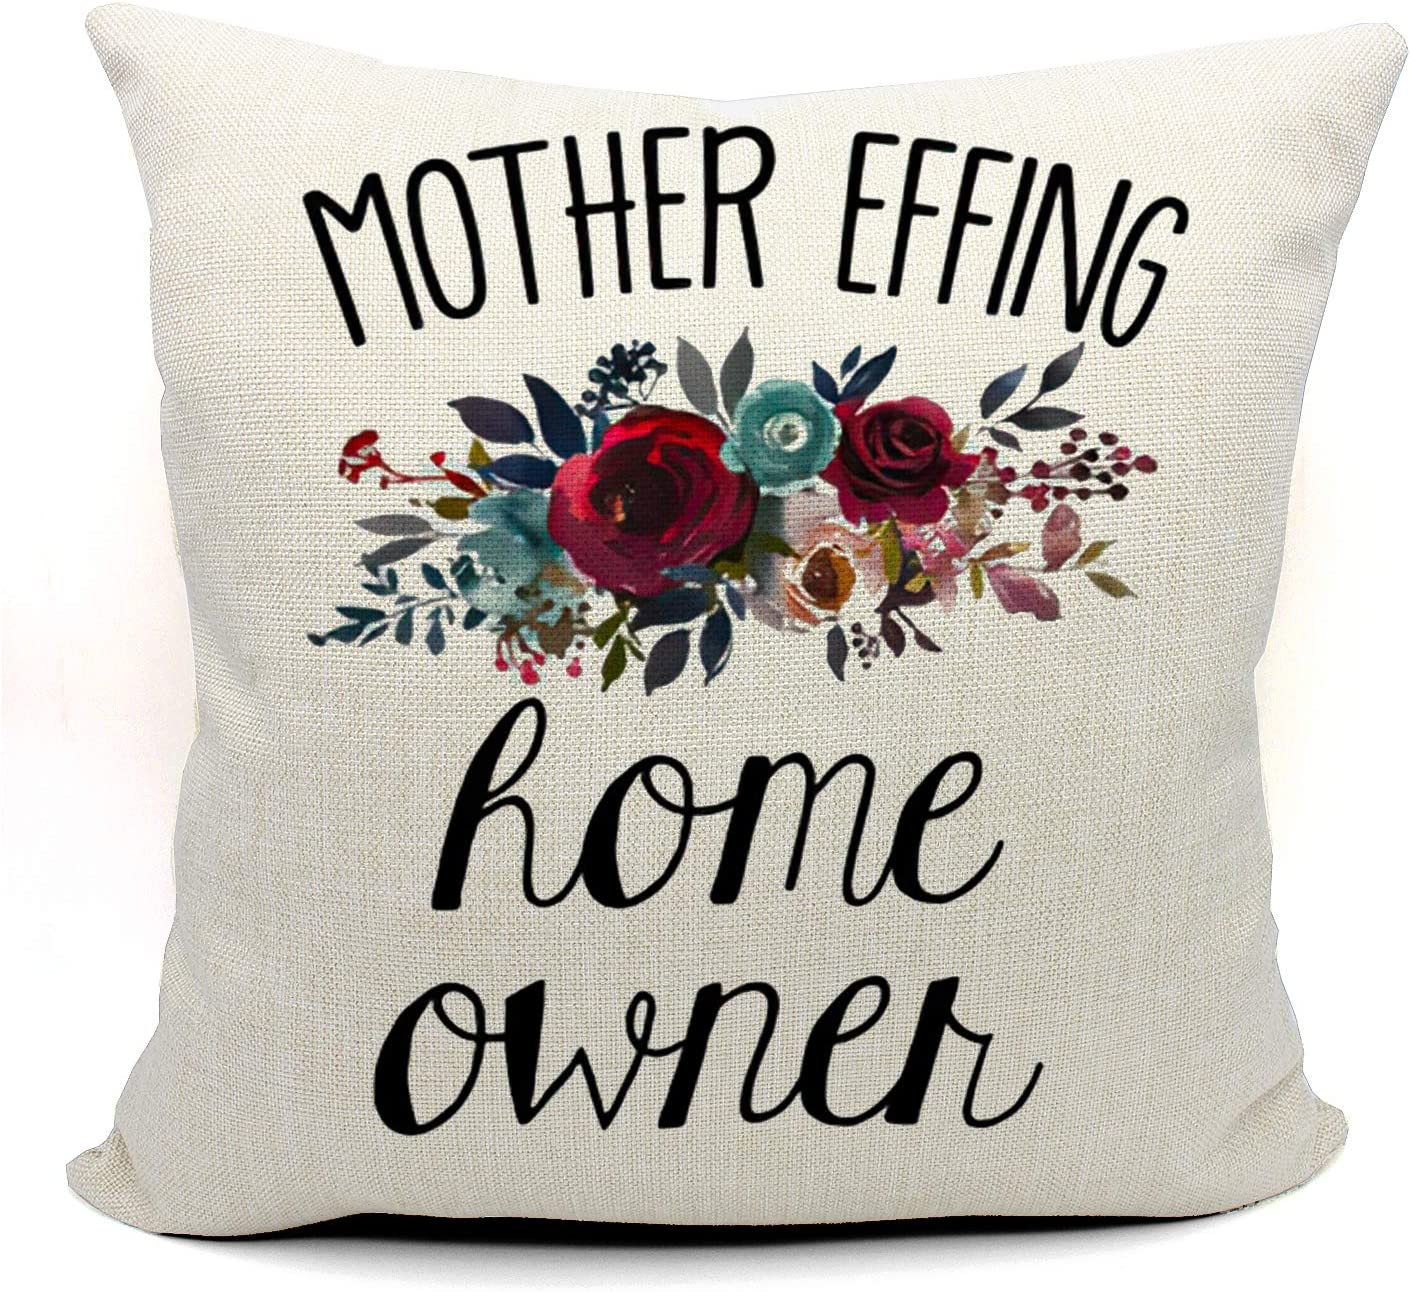 Mother Effing Home OwnerThrow Pillow Case, Funny Homeowner Gift, New Home Owner Gift,Housewarming Gift, Funny First Time Home Owner Gift Ideas, 18 x 18 Inch Linen Cushion Cover for Sofa Couch Bed